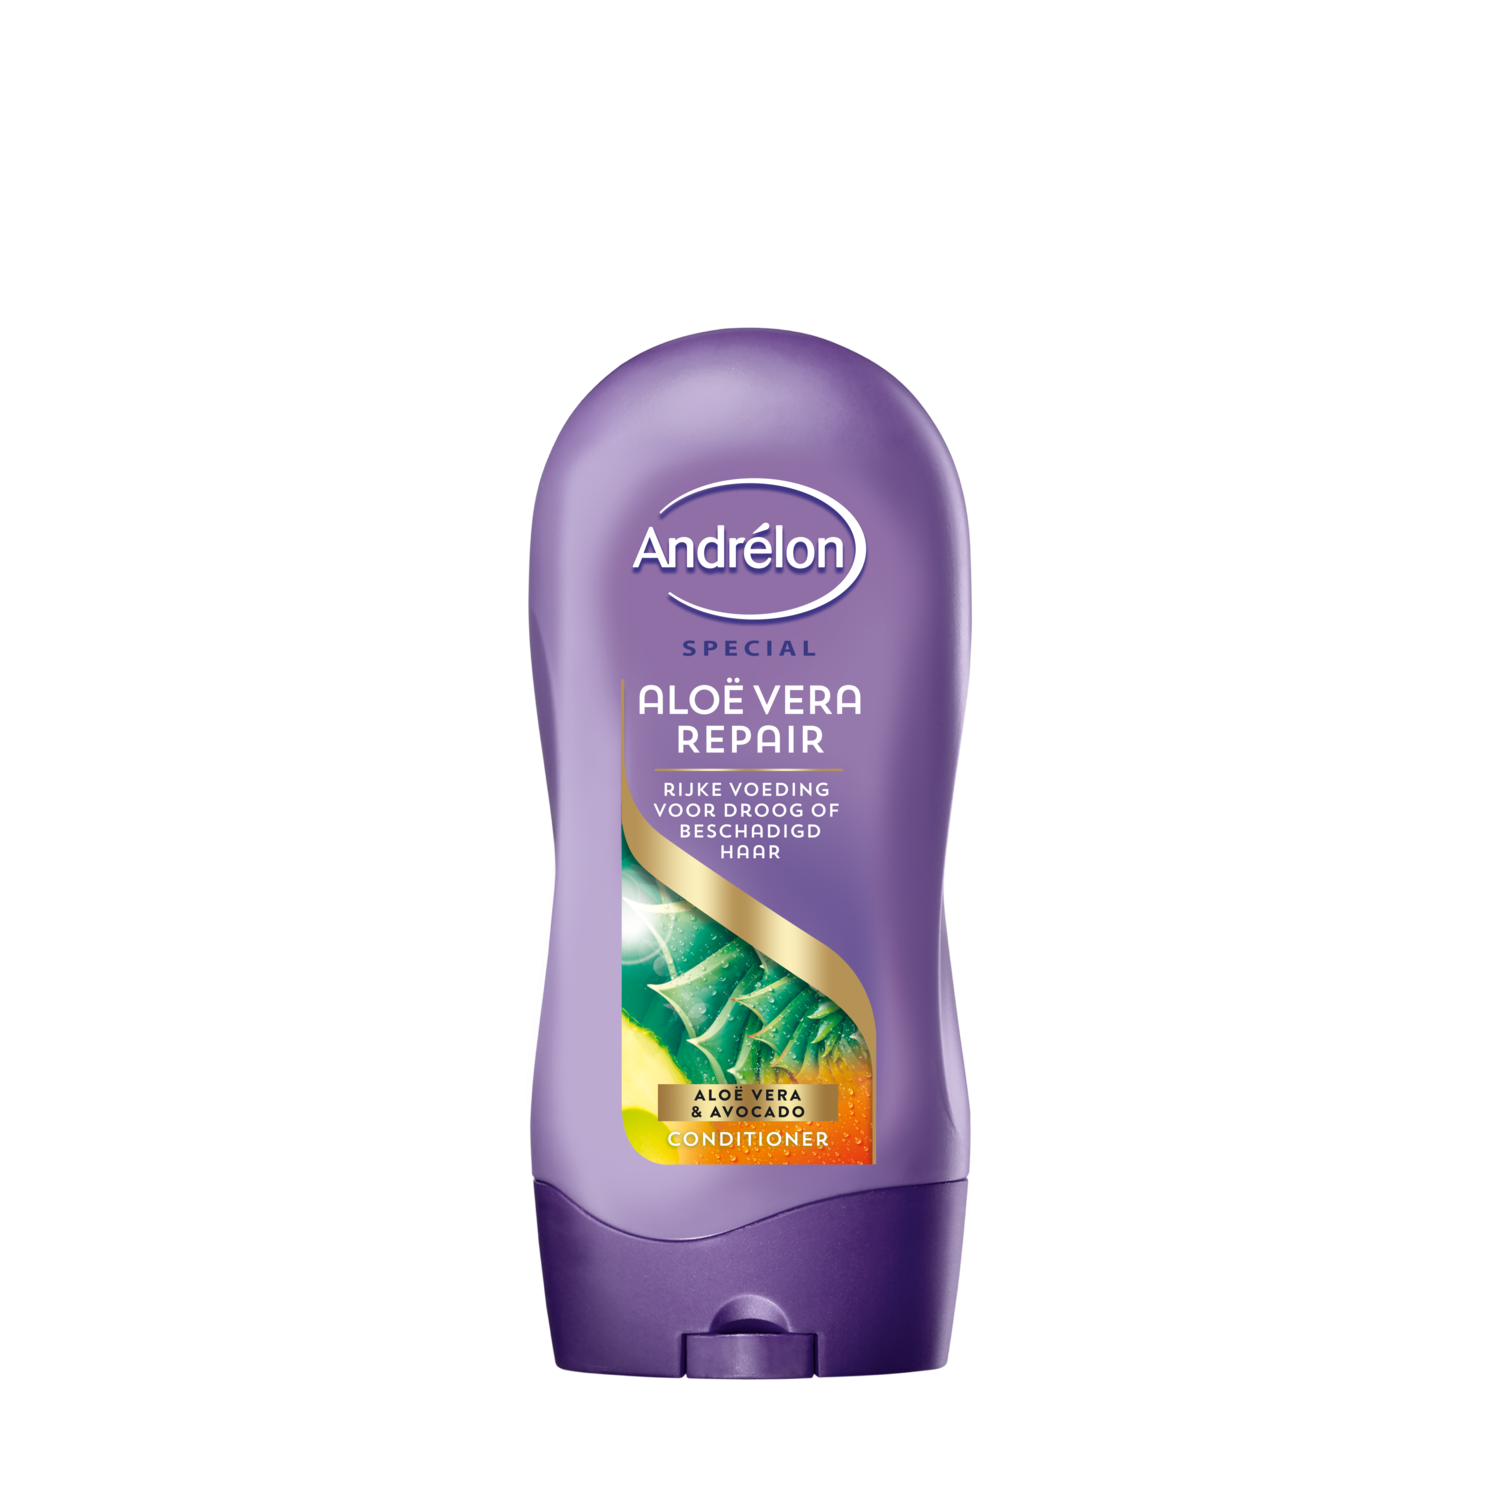 Andrelon Special Aloe Vera Repair Conditioner 300 ml